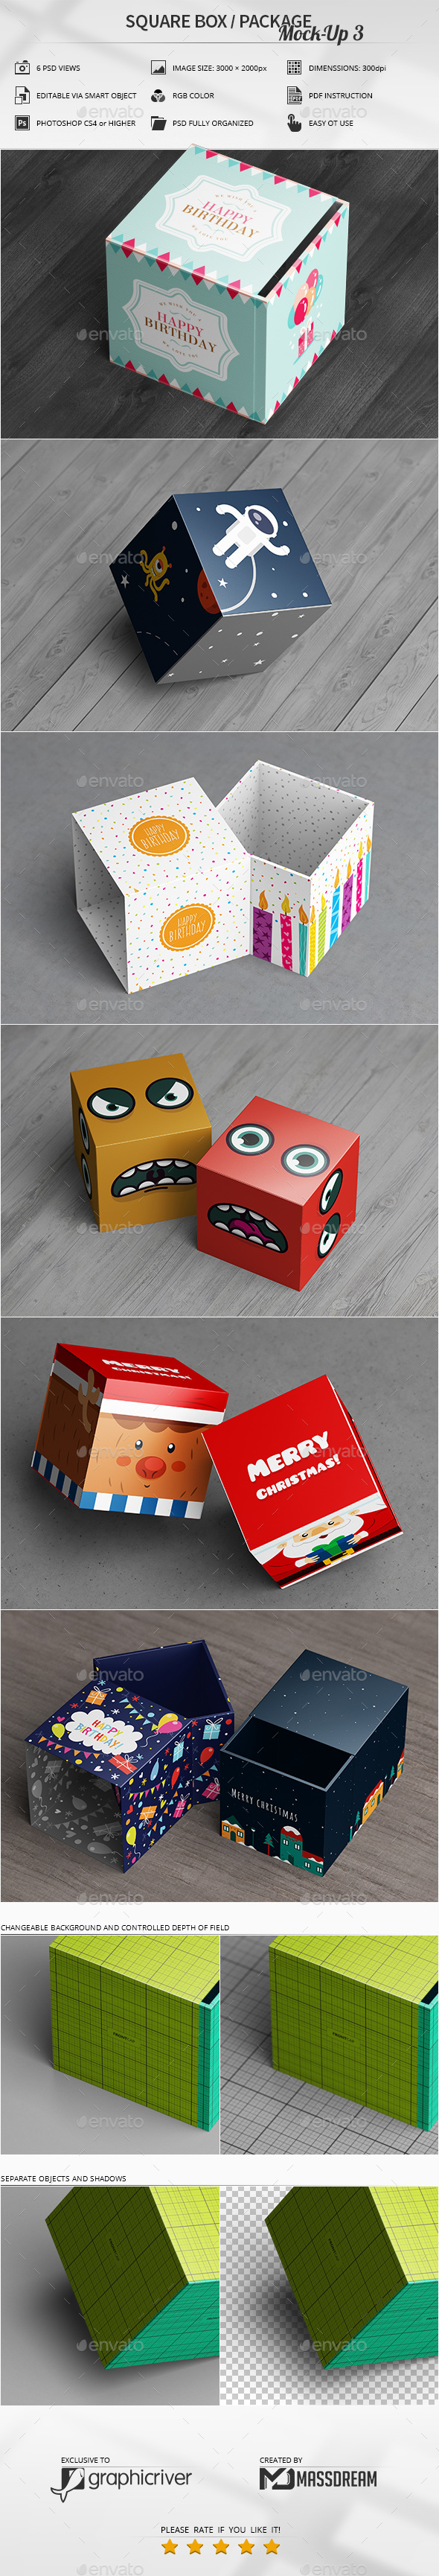 Square Box / Package Mock-Up 3 - Miscellaneous Packaging